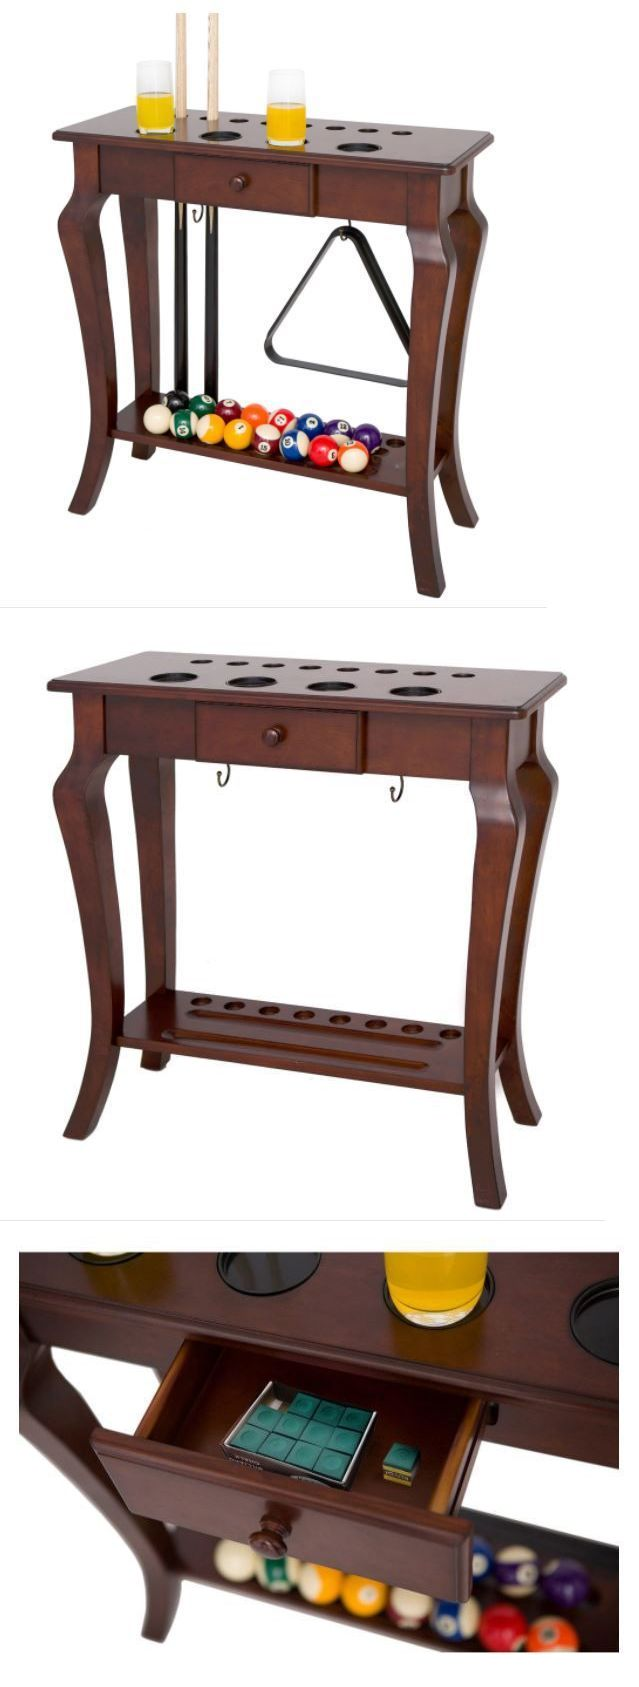 Ball and Cue Racks 75185: Pool Table Accessories Floor Cue Rack Wood Billiards Ball Holder Furniture Home -> BUY IT NOW ONLY: $352.97 on eBay!